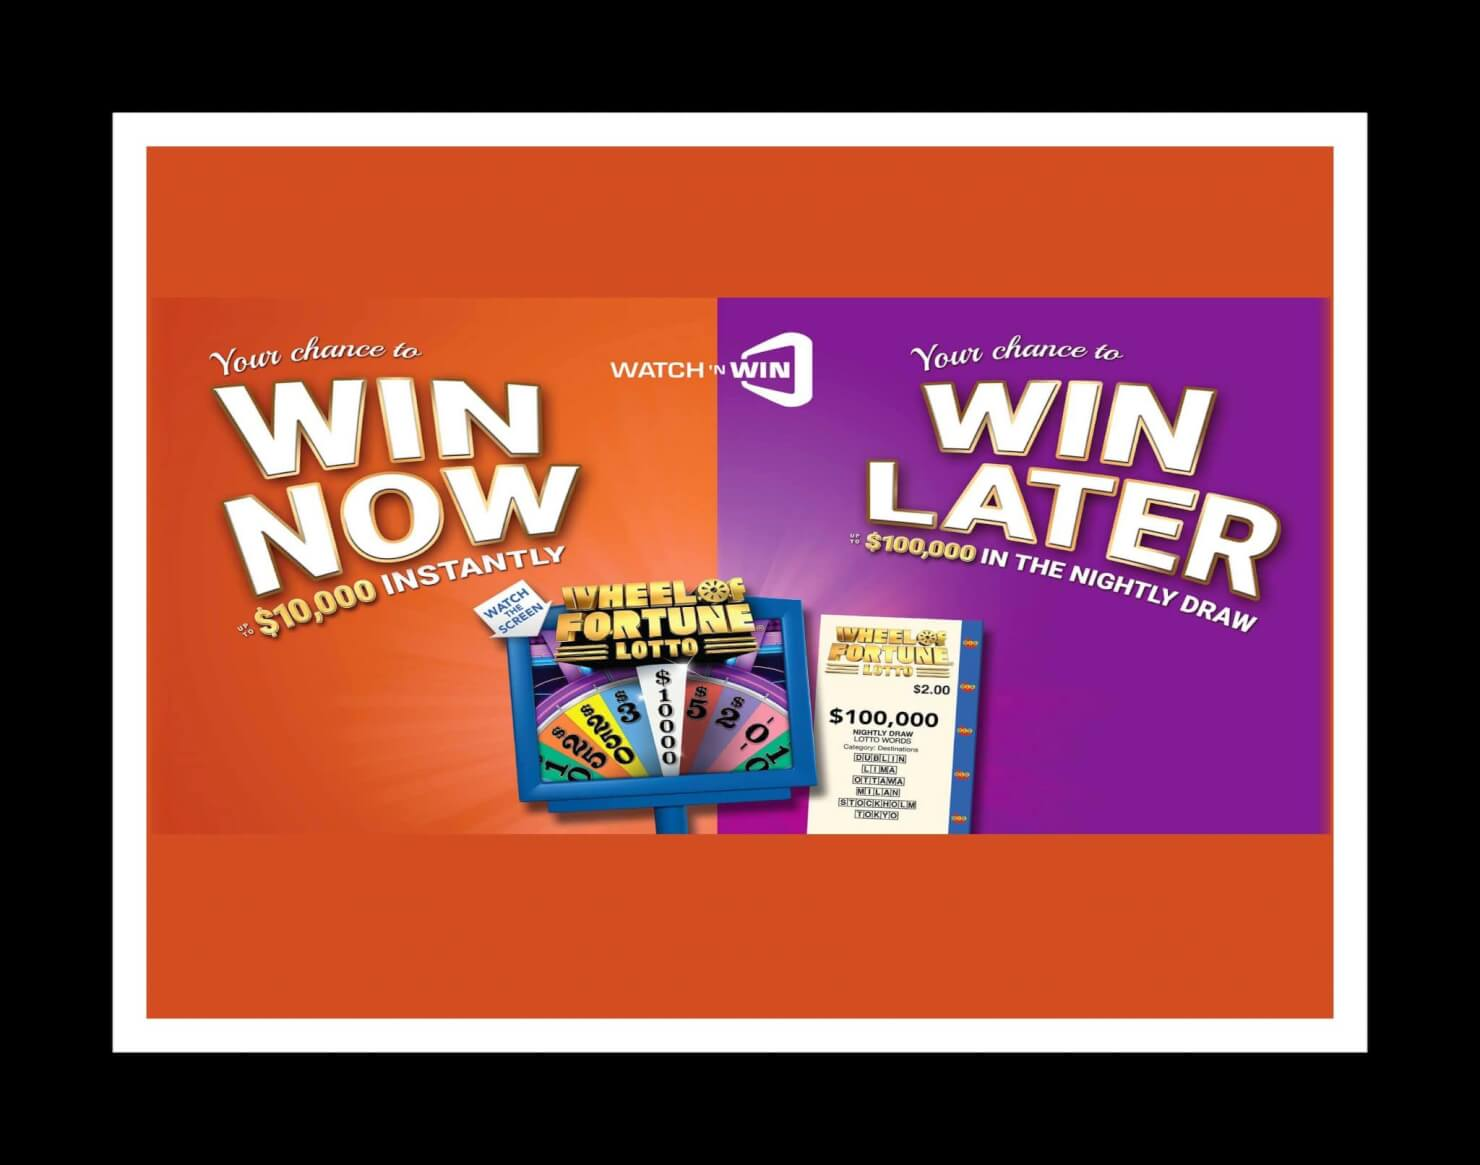 lottery ticket from olg play ecoupon the ontario lottery gaming corporation has a new promotion